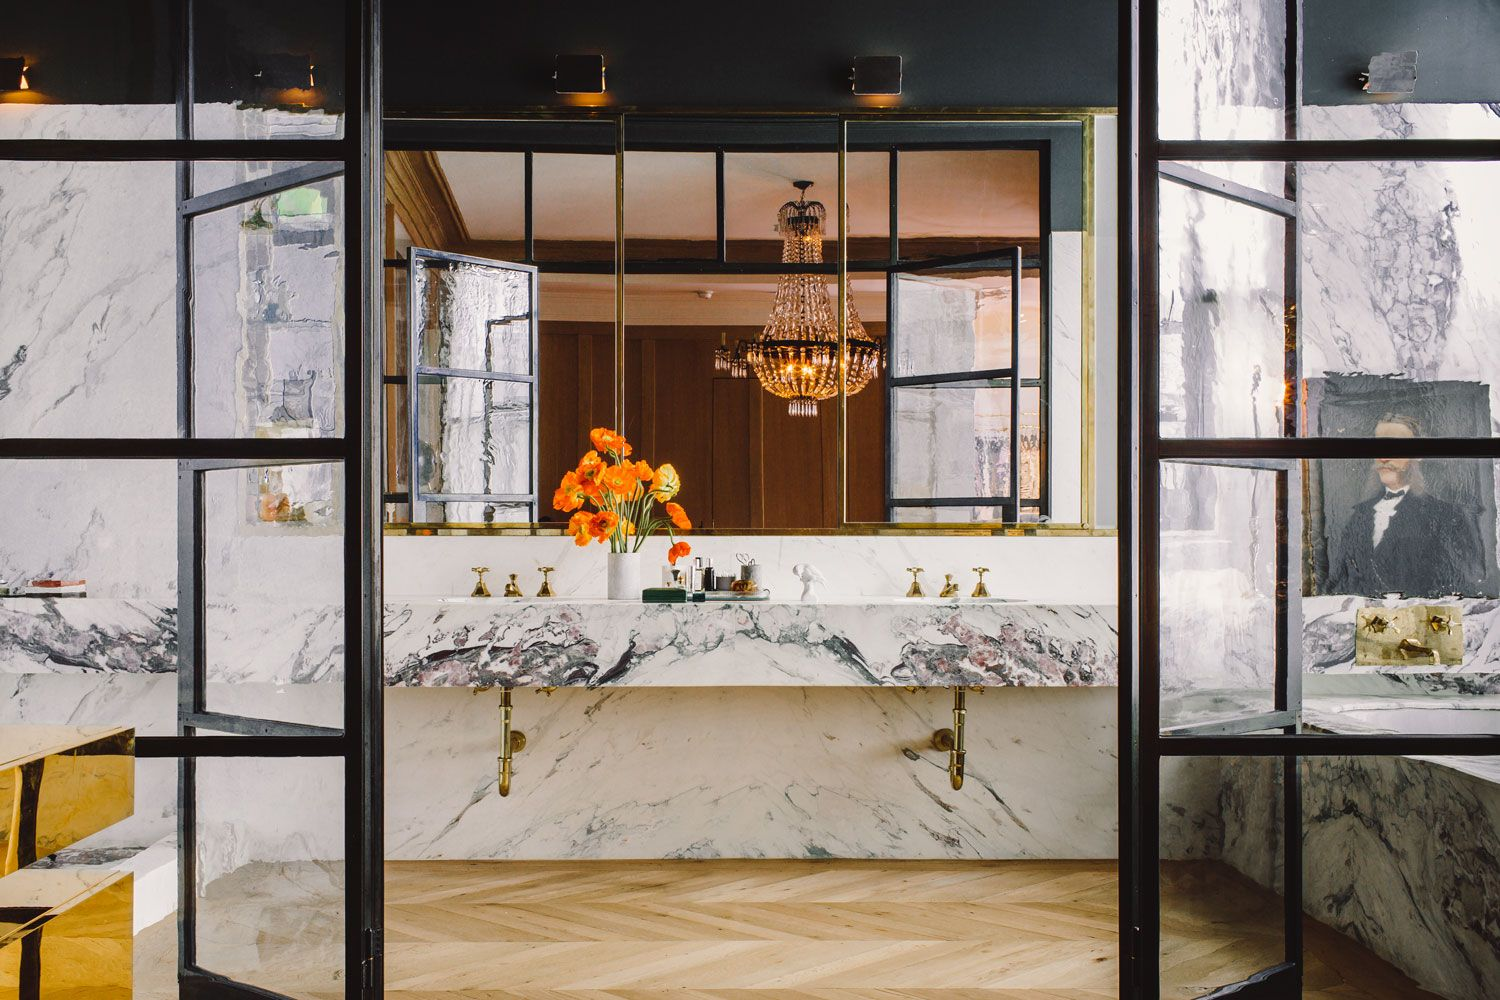 Meyer Davis Studio designed the master bath of a 19th-century cast-iron building with purple-veined Calacatta Paonazzo marble contrasting an unvarnished chevron wood floor.